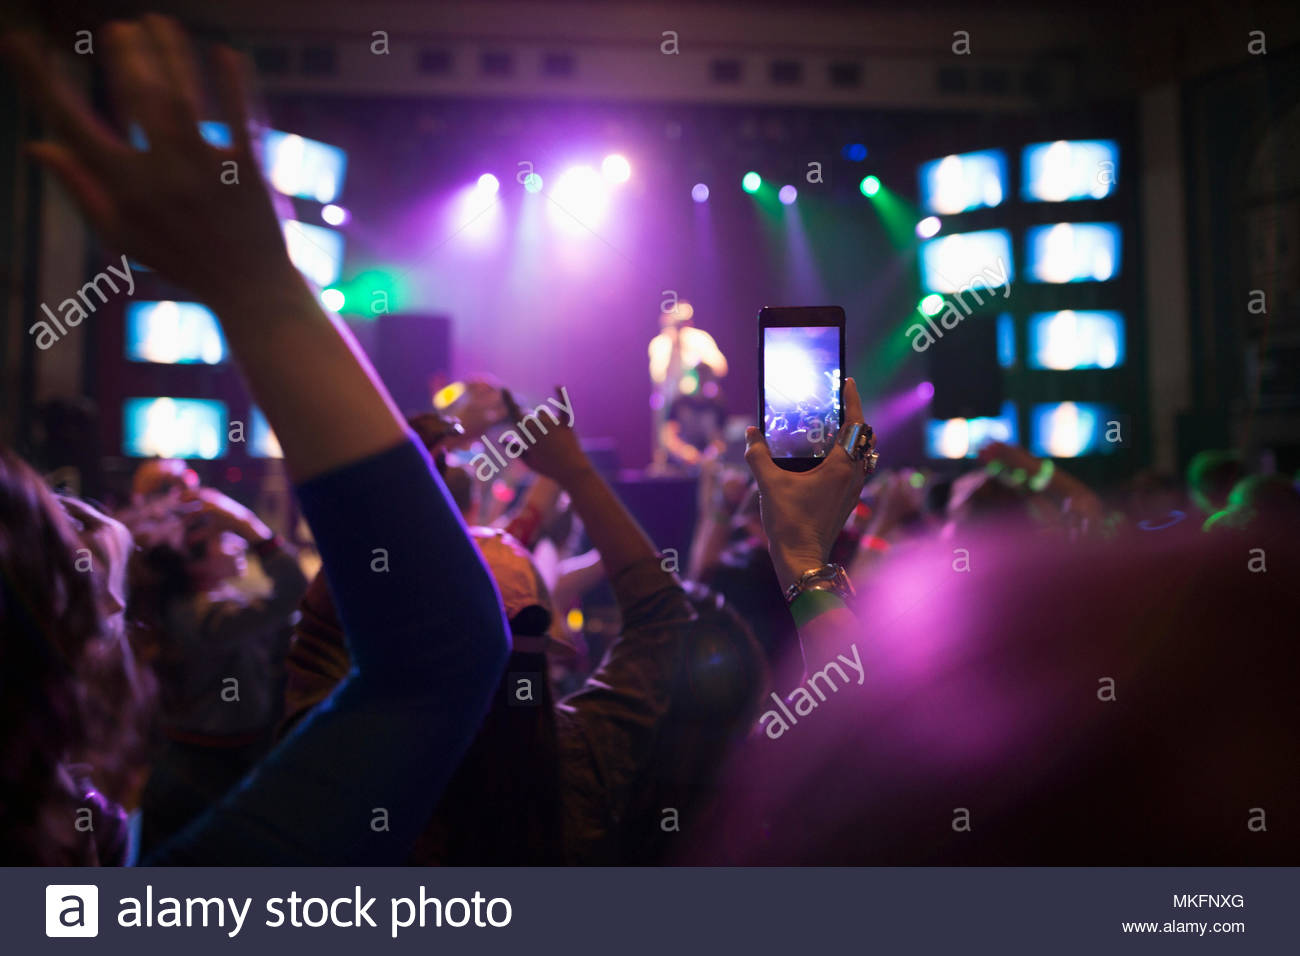 Crowd watching musician perform on nightclub stage, videoing with camera phone - Stock Image